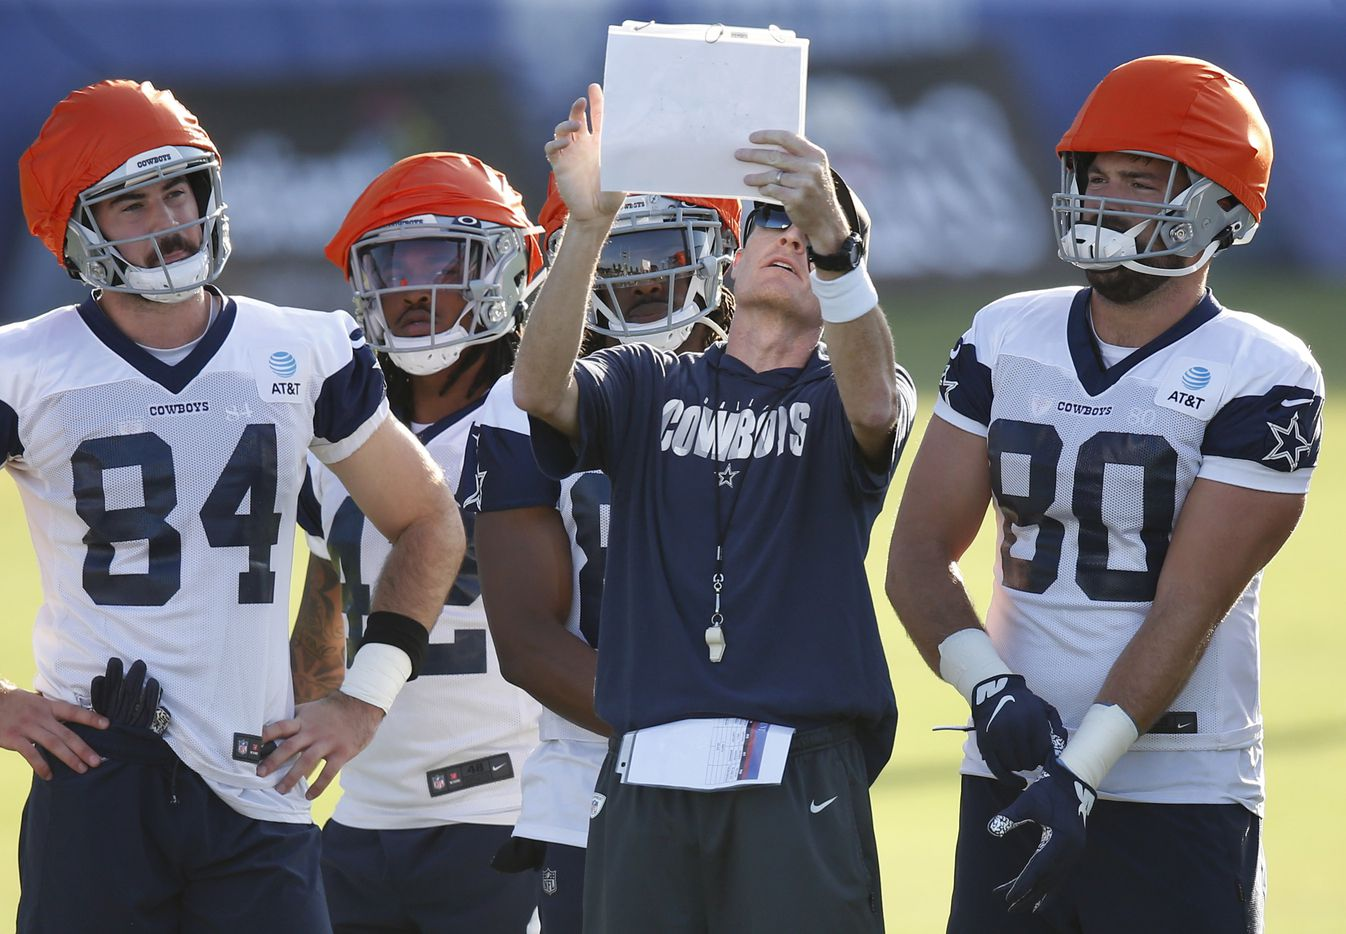 Dallas Cowboys special teams coach John Fassel goes over the next play with players during the first day of training camp at Dallas Cowboys headquarters at The Star in Frisco, Texas on Friday, August 14, 2020. (Vernon Bryant/The Dallas Morning News)